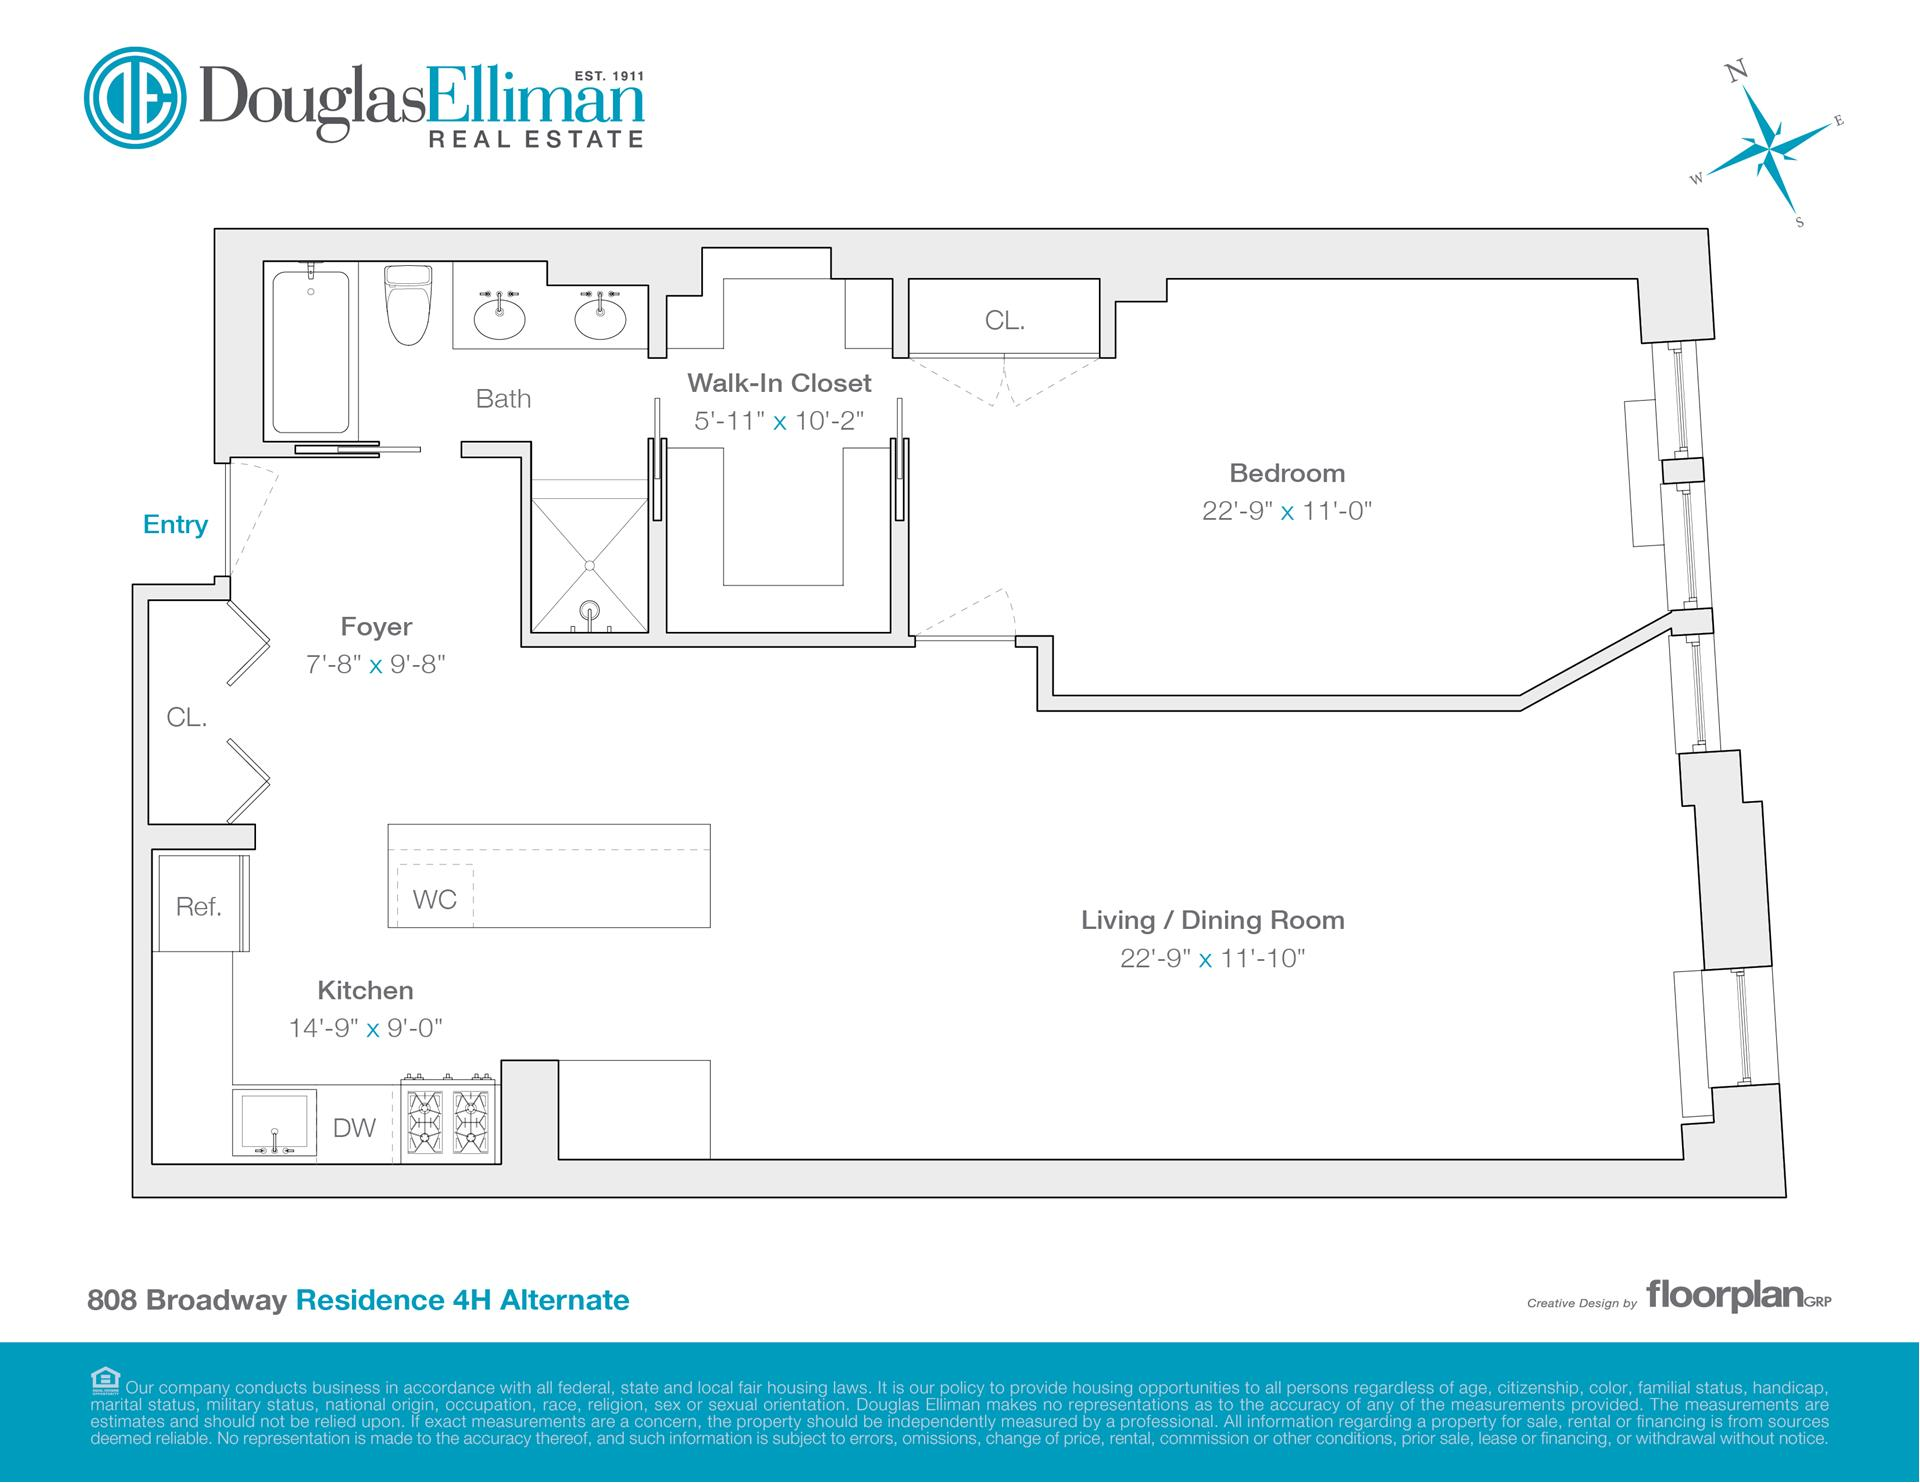 Floor plan of THE RENWICK, 808 Broadway, 4H - Greenwich Village, New York